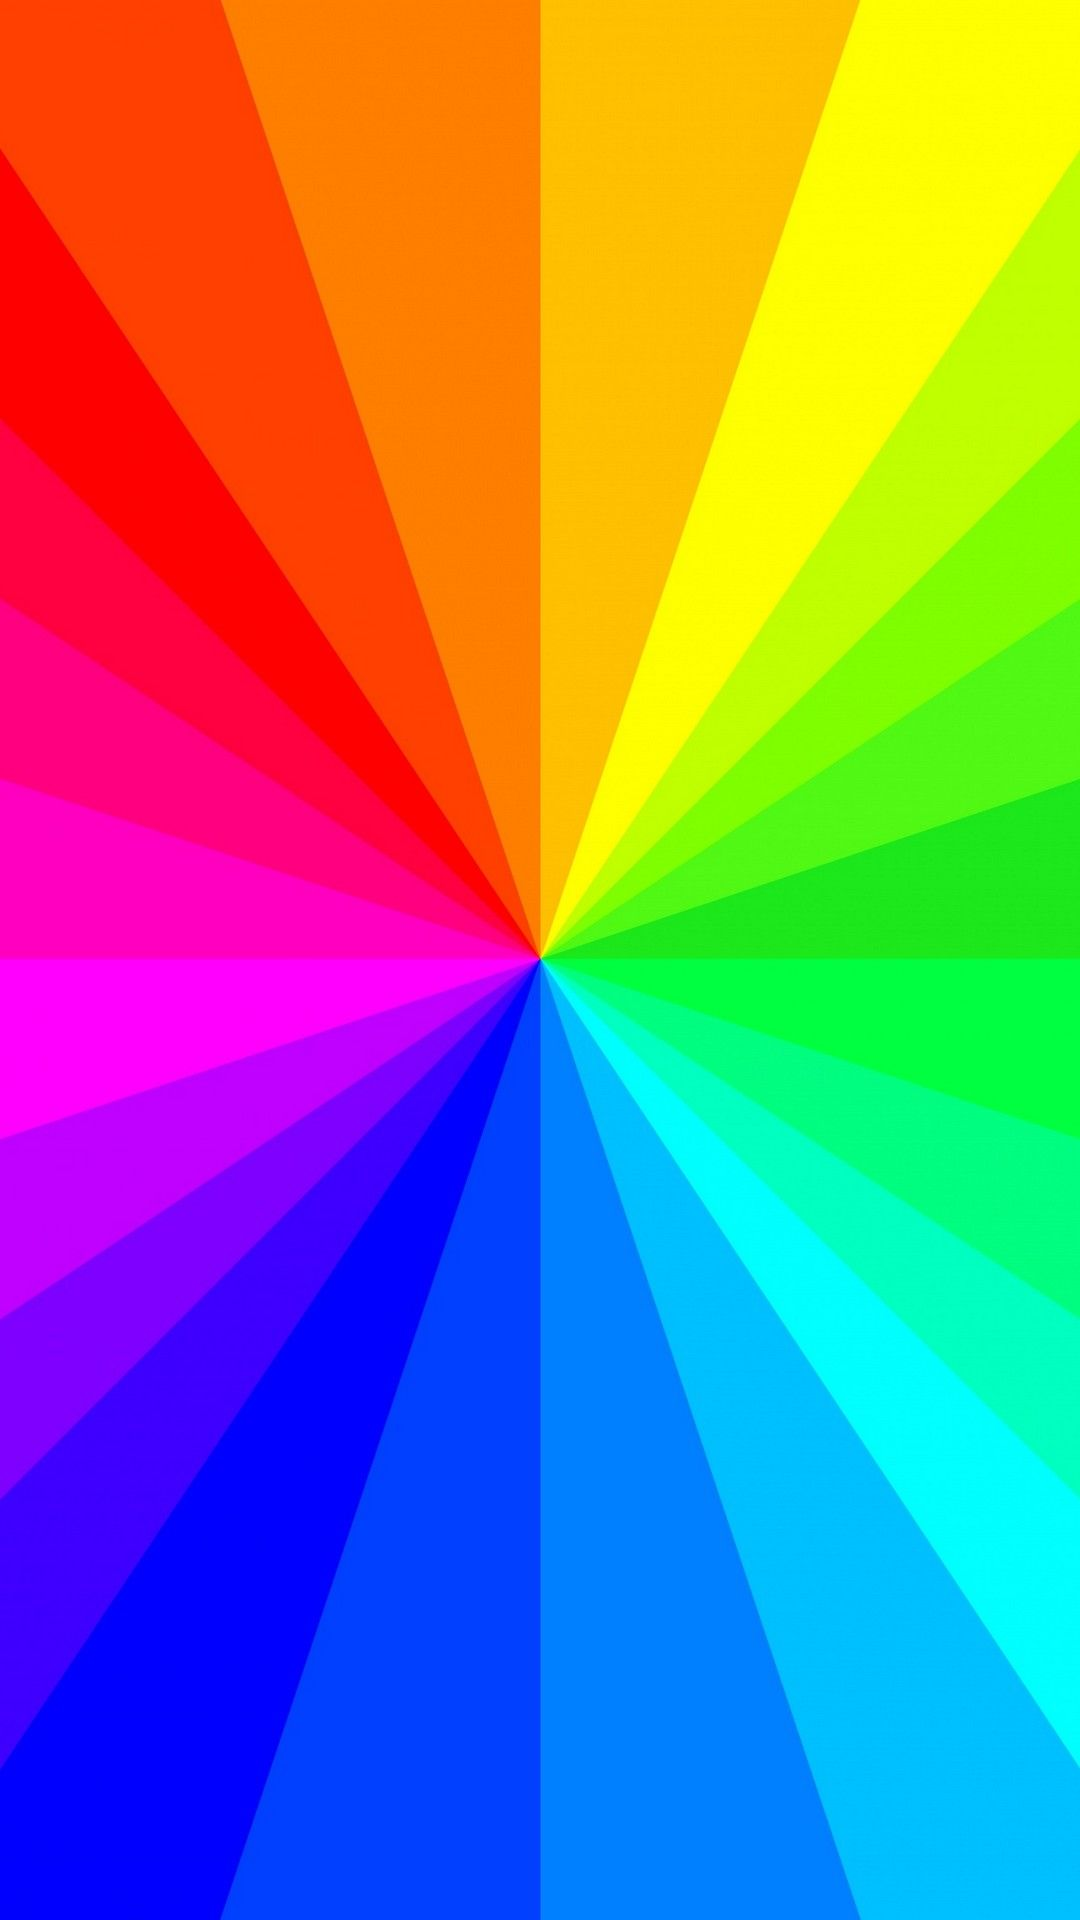 Rainbow Color iPhone Wallpapers - Wallpaper Cave